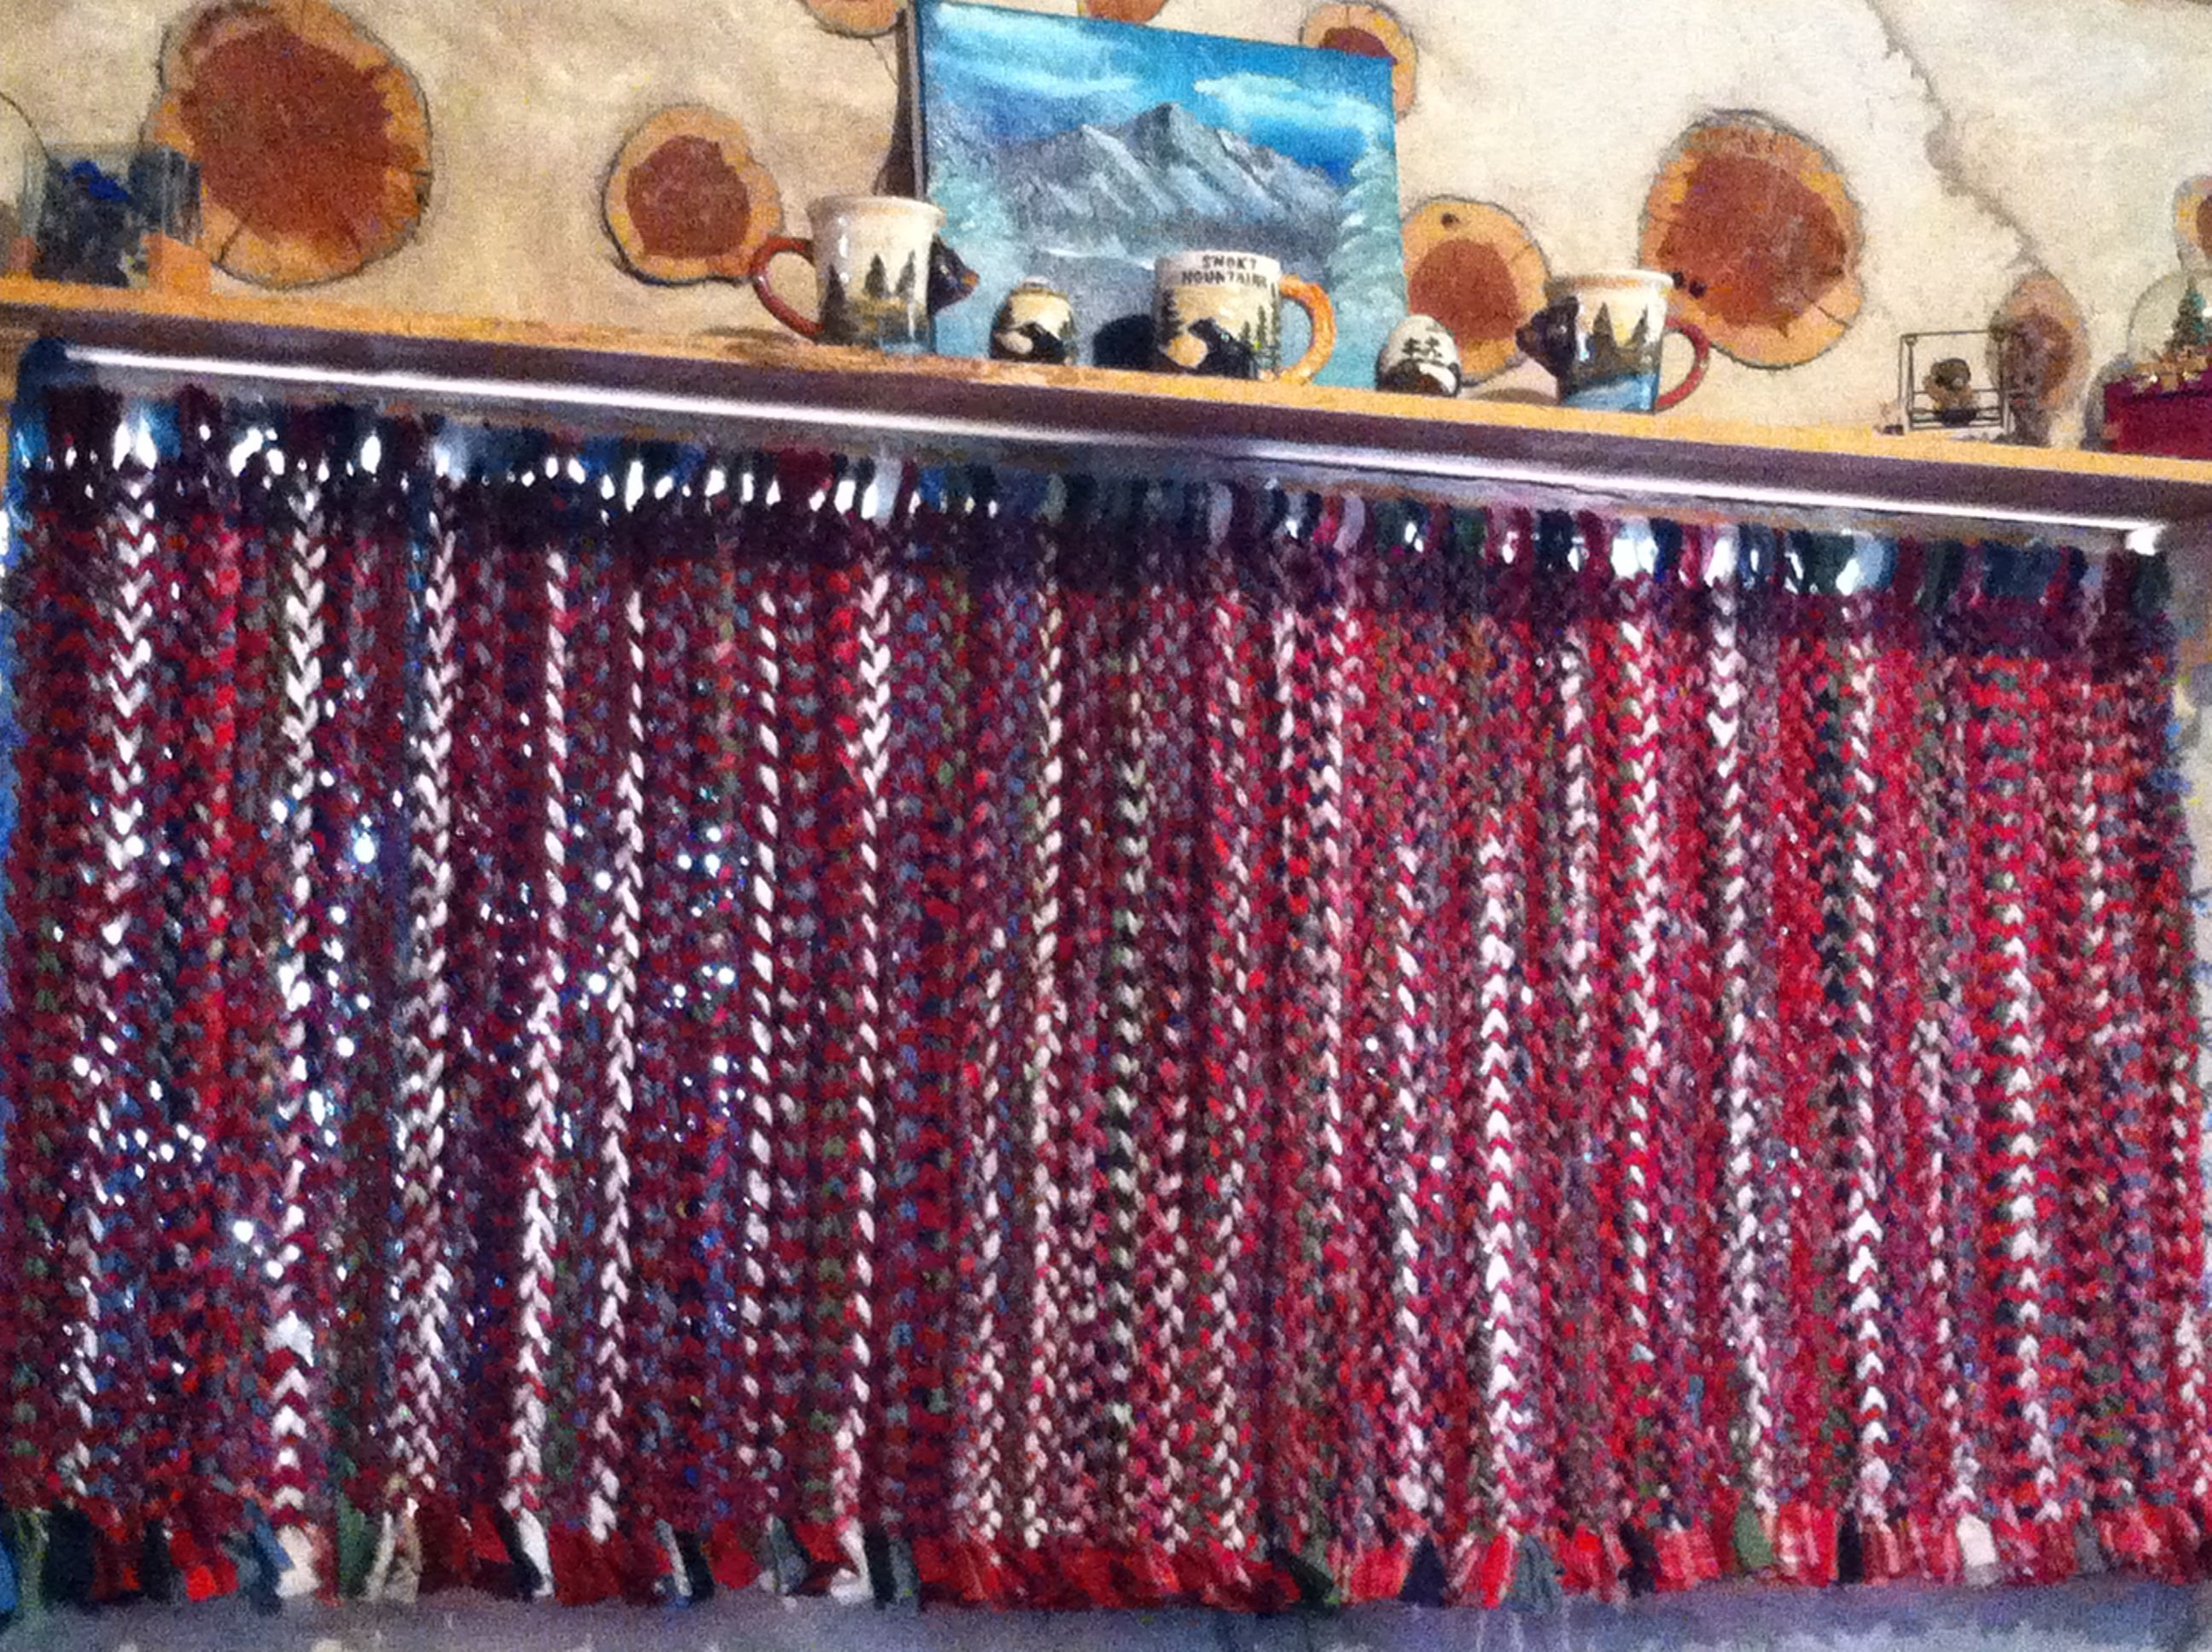 Finished with my 1st pair of woven rag rug curtains ! Made by me LKV :)